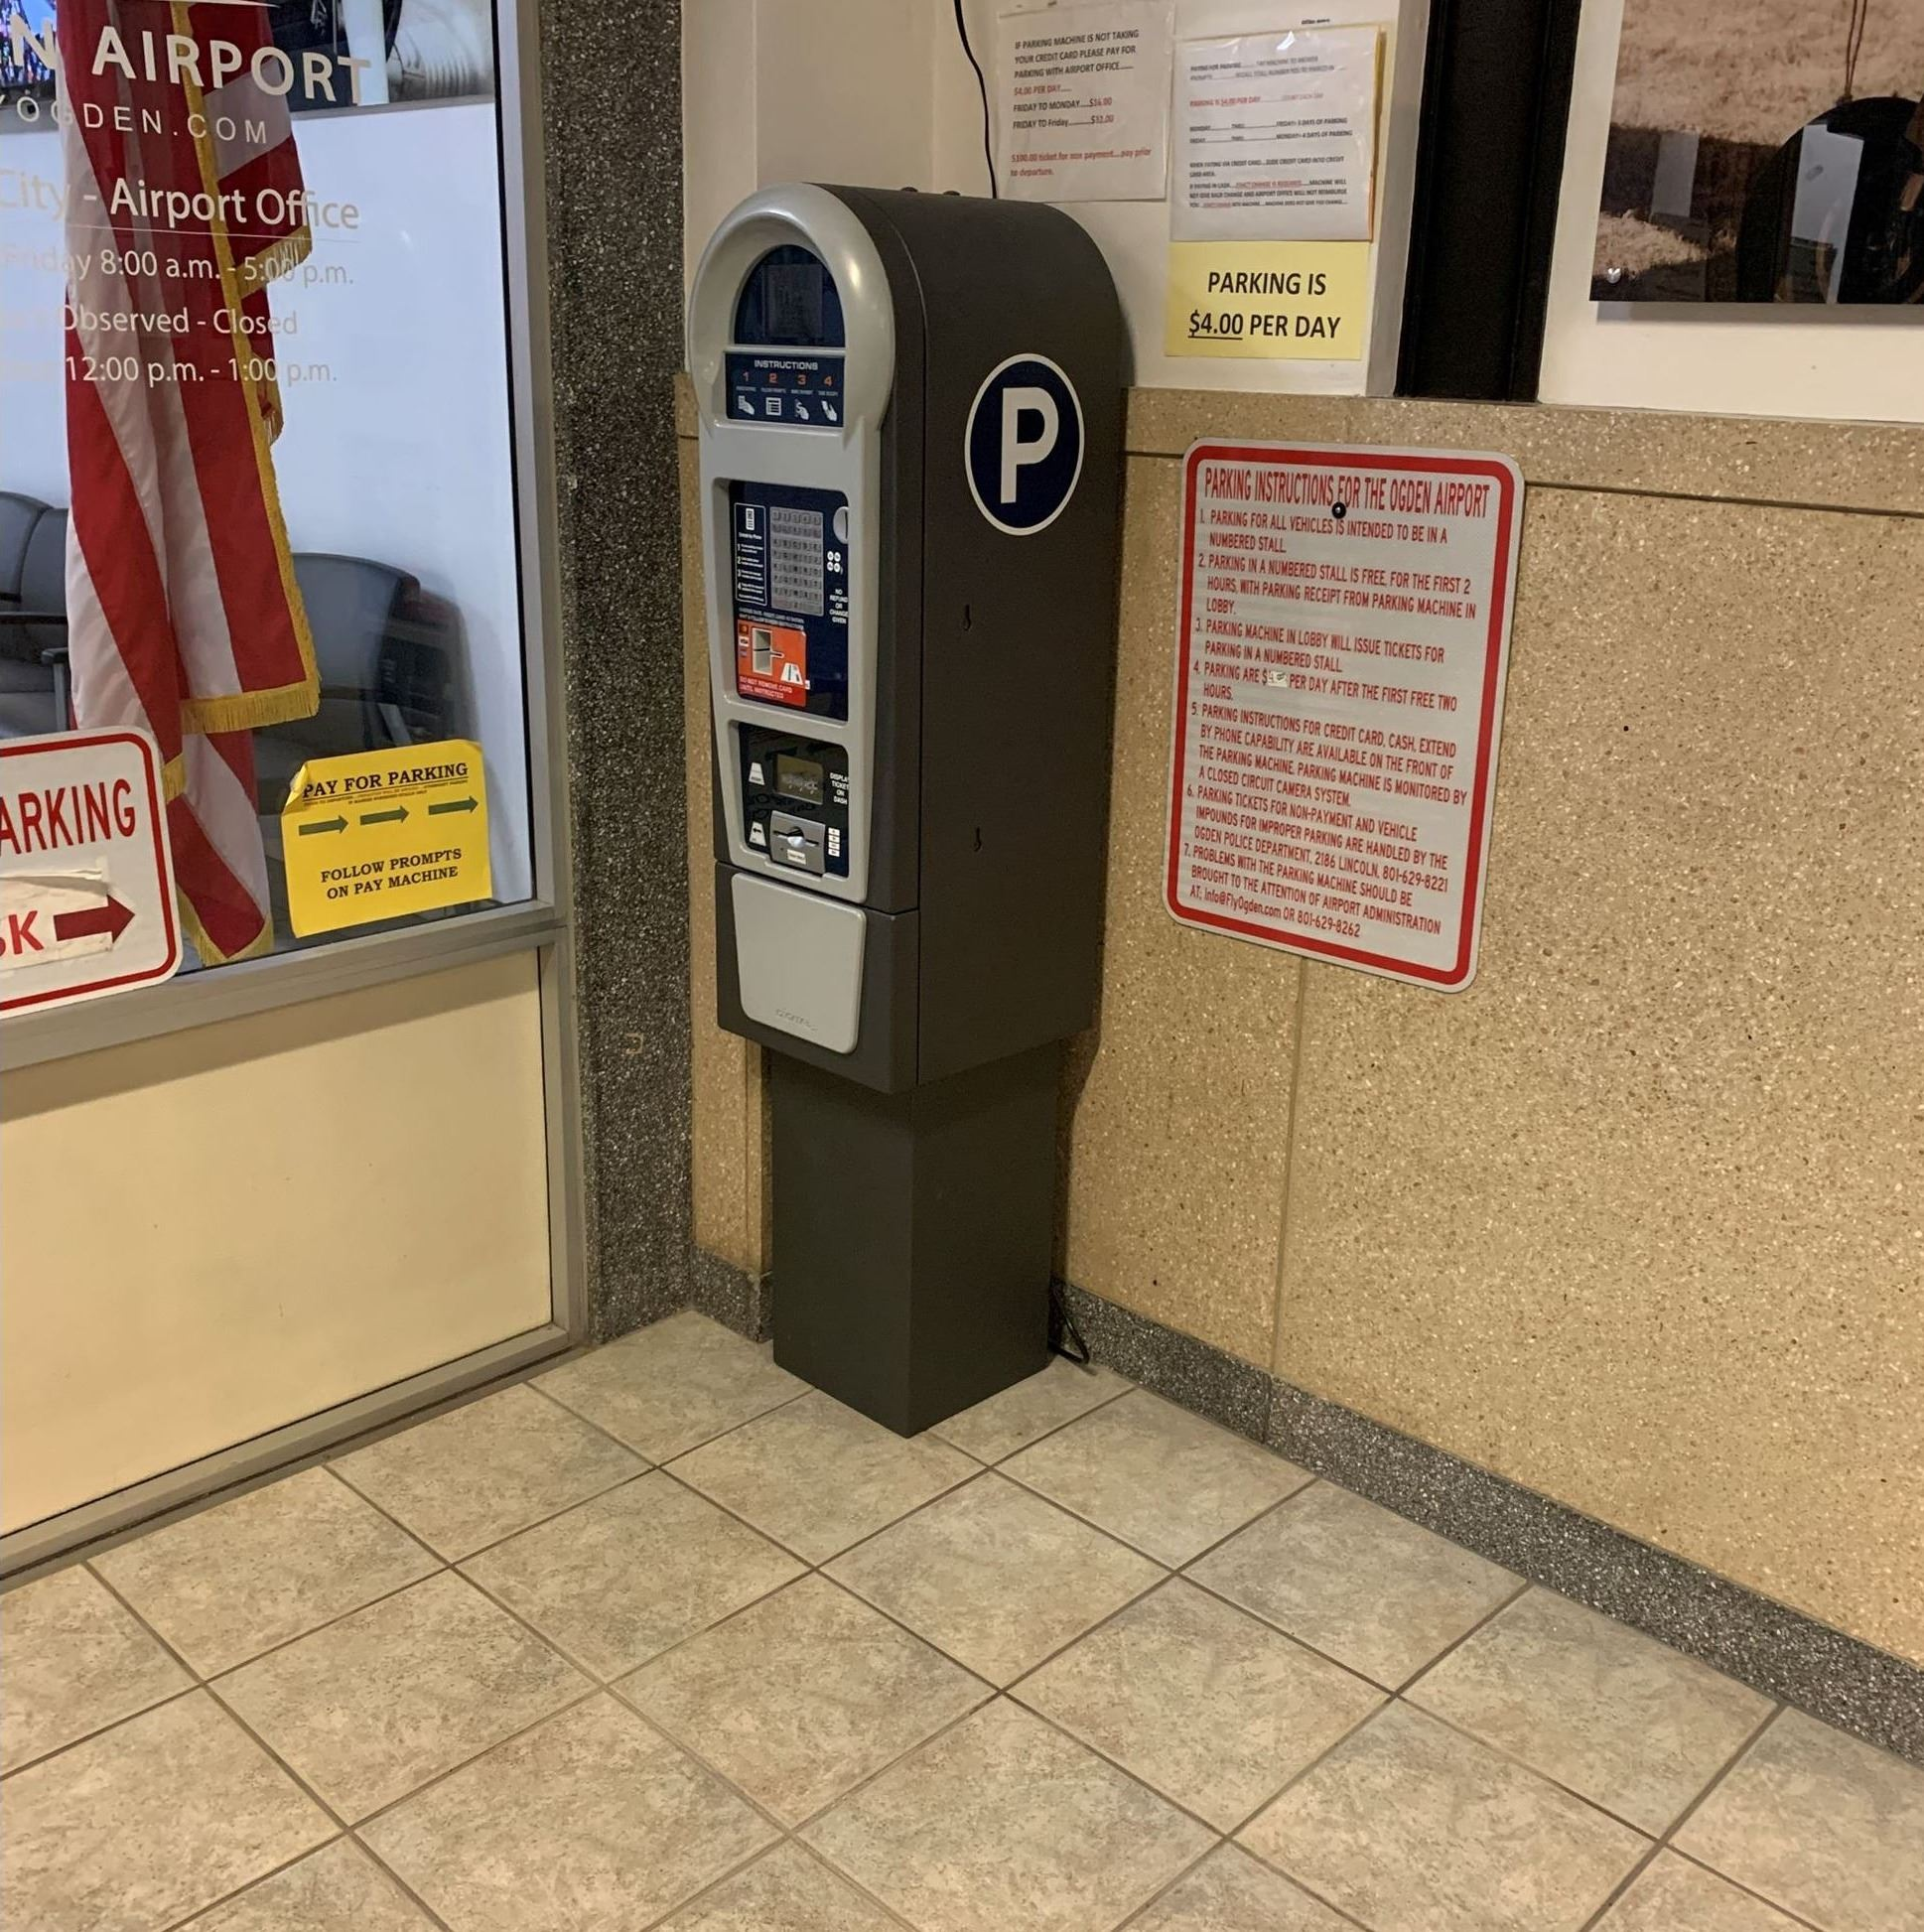 Pay Station located in Vestibule